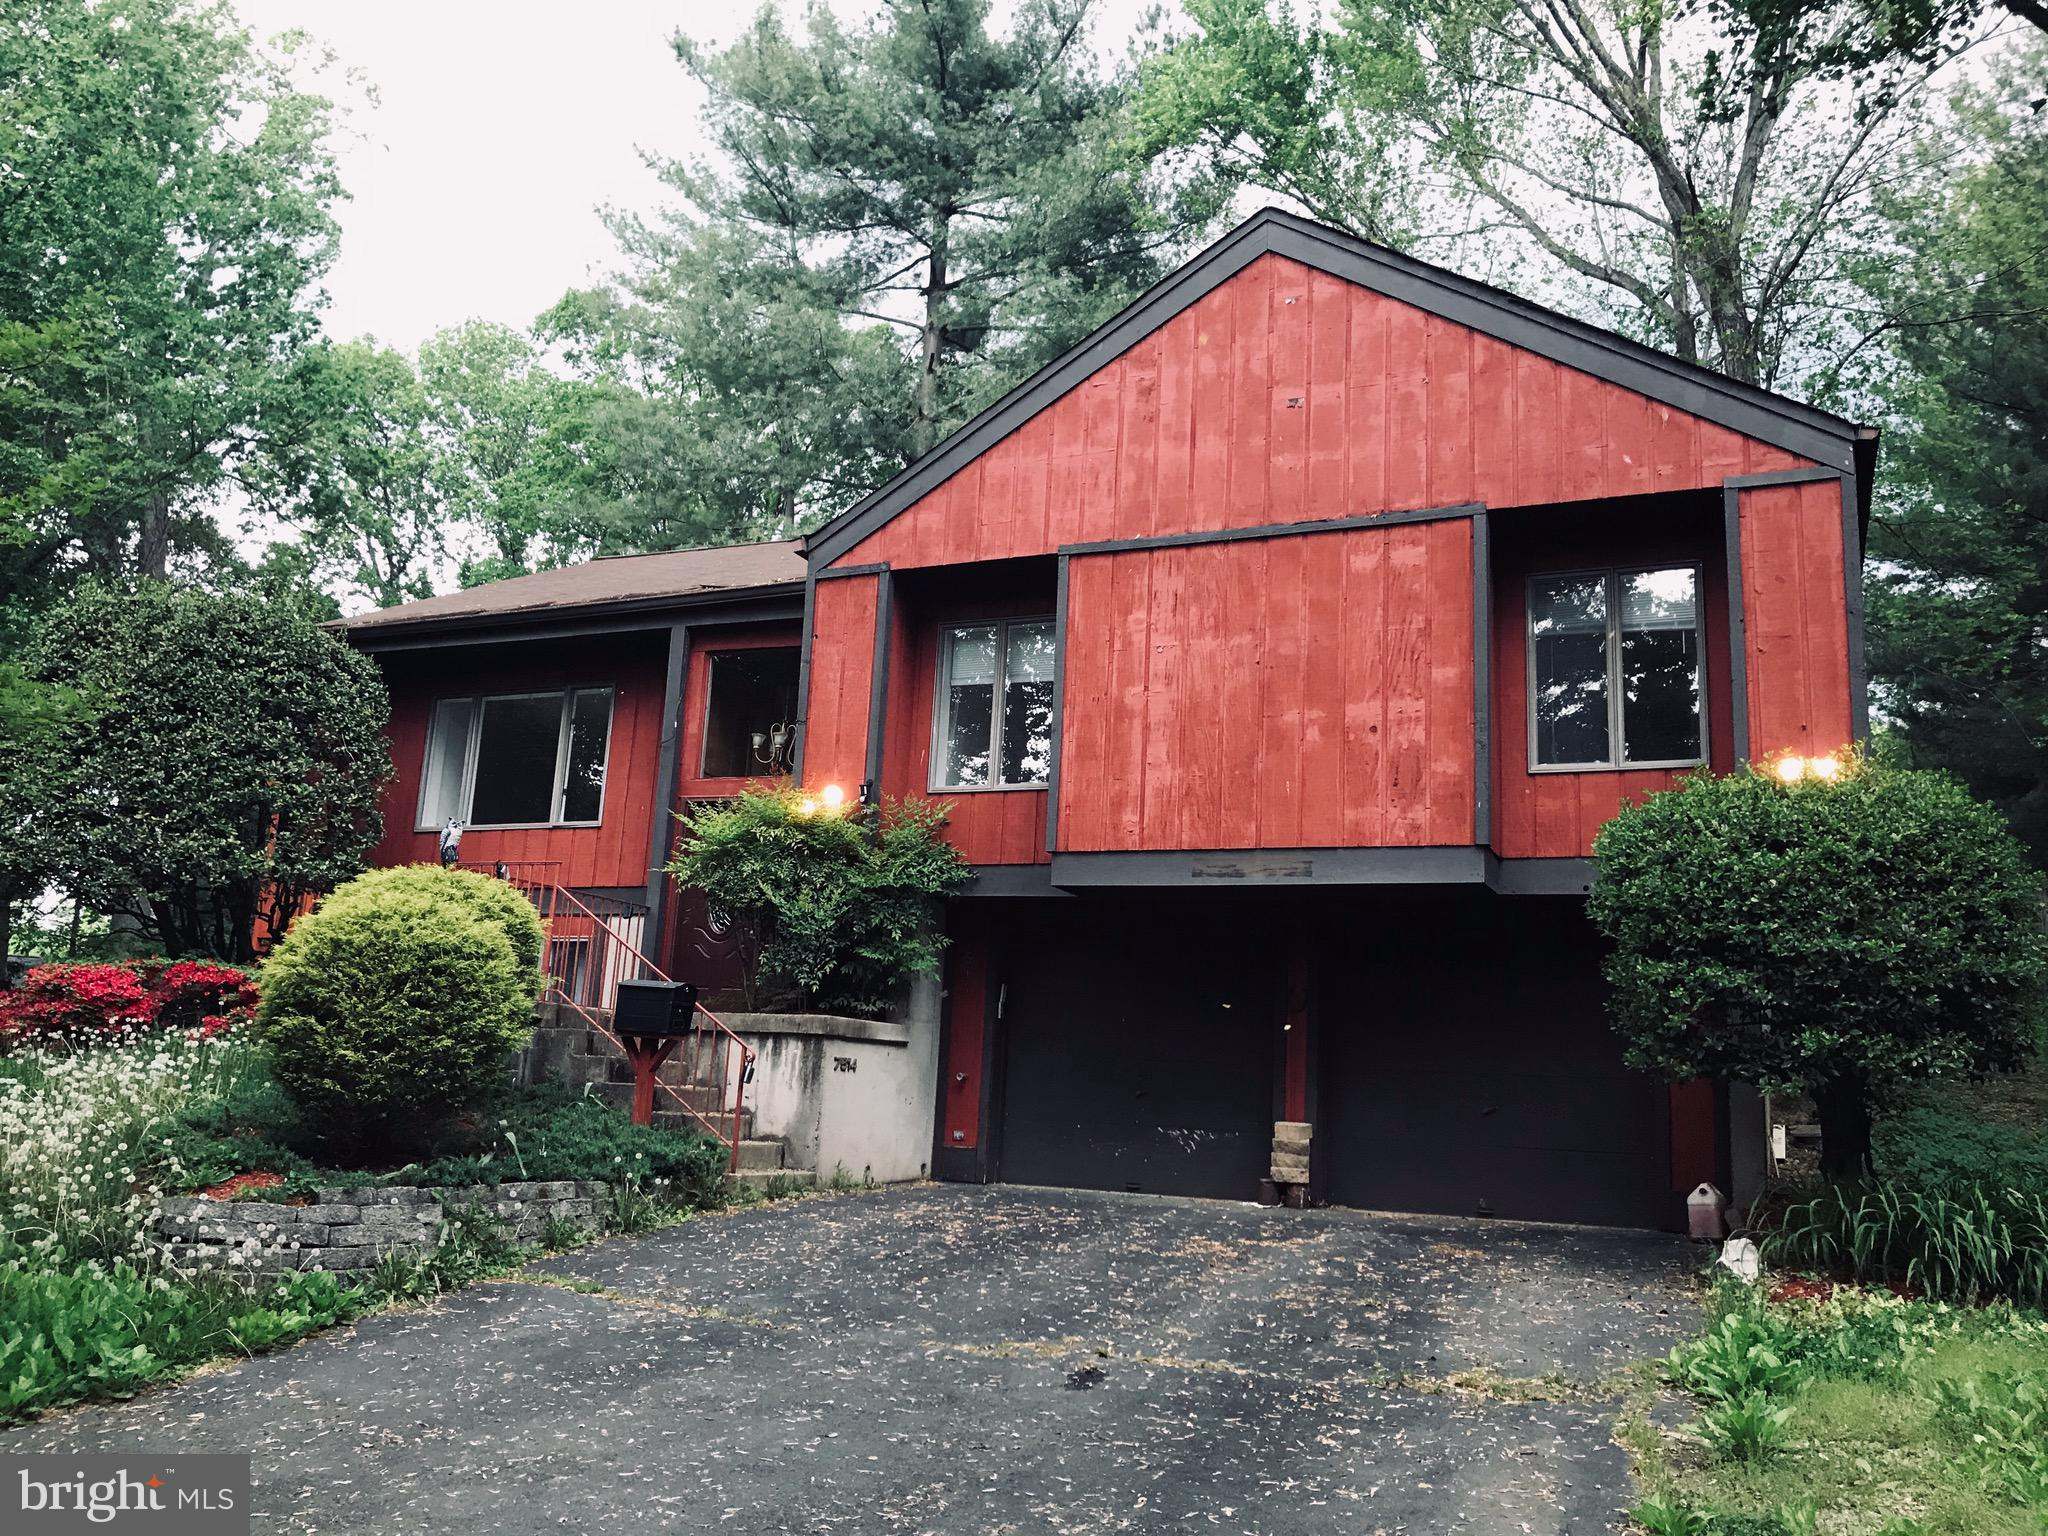 PRICED $57K UNDER 2019 TAX ASSESSED VALUE!! Lovely cabin style home in serene wooded setting, with lots of entertaining space inside and out- large deck with hot tub and nice size yard. Freshly painted inside/out, new lighting fixtures, new floors in the kitchen, basement bathroom and laundry. Vacant and ready for a new owner. MUST SEE!